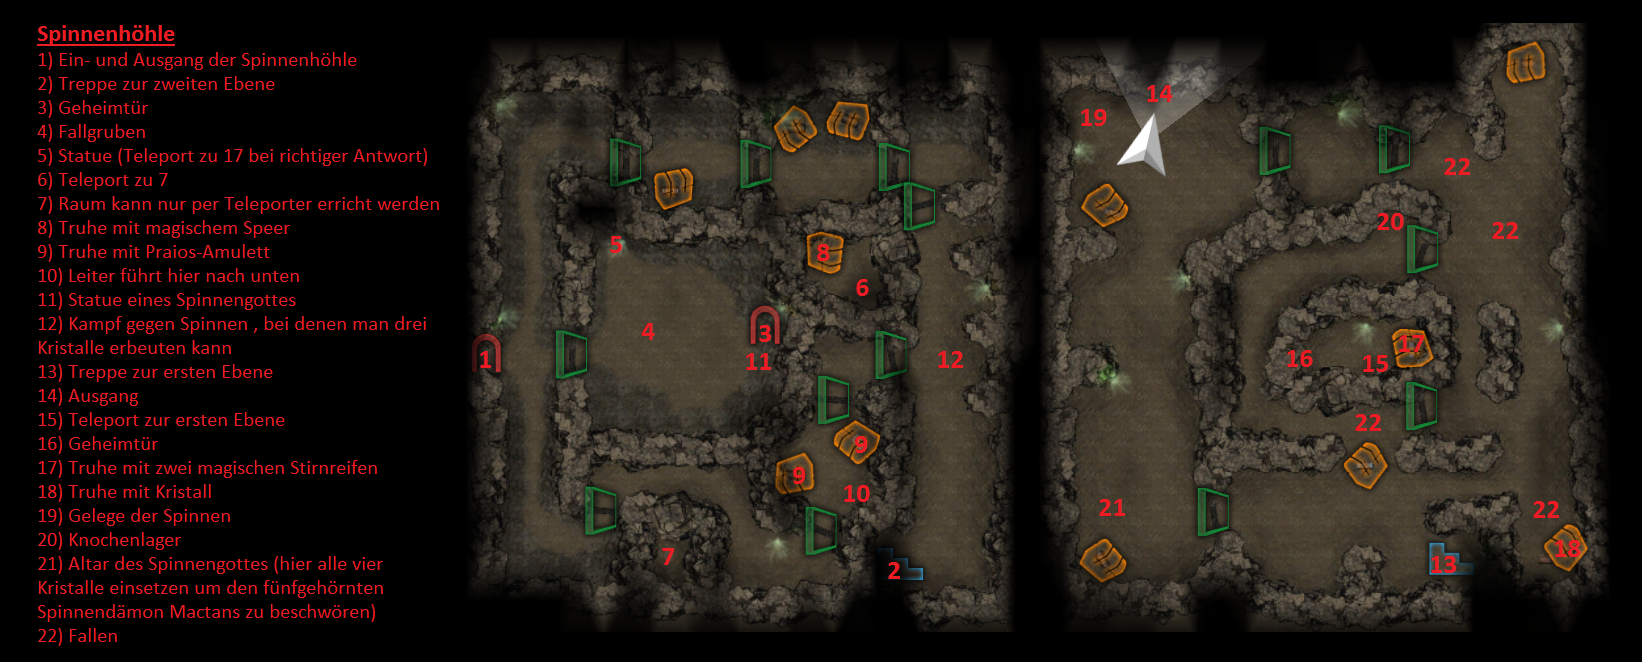 Dungeon Spinnenhöhle.png